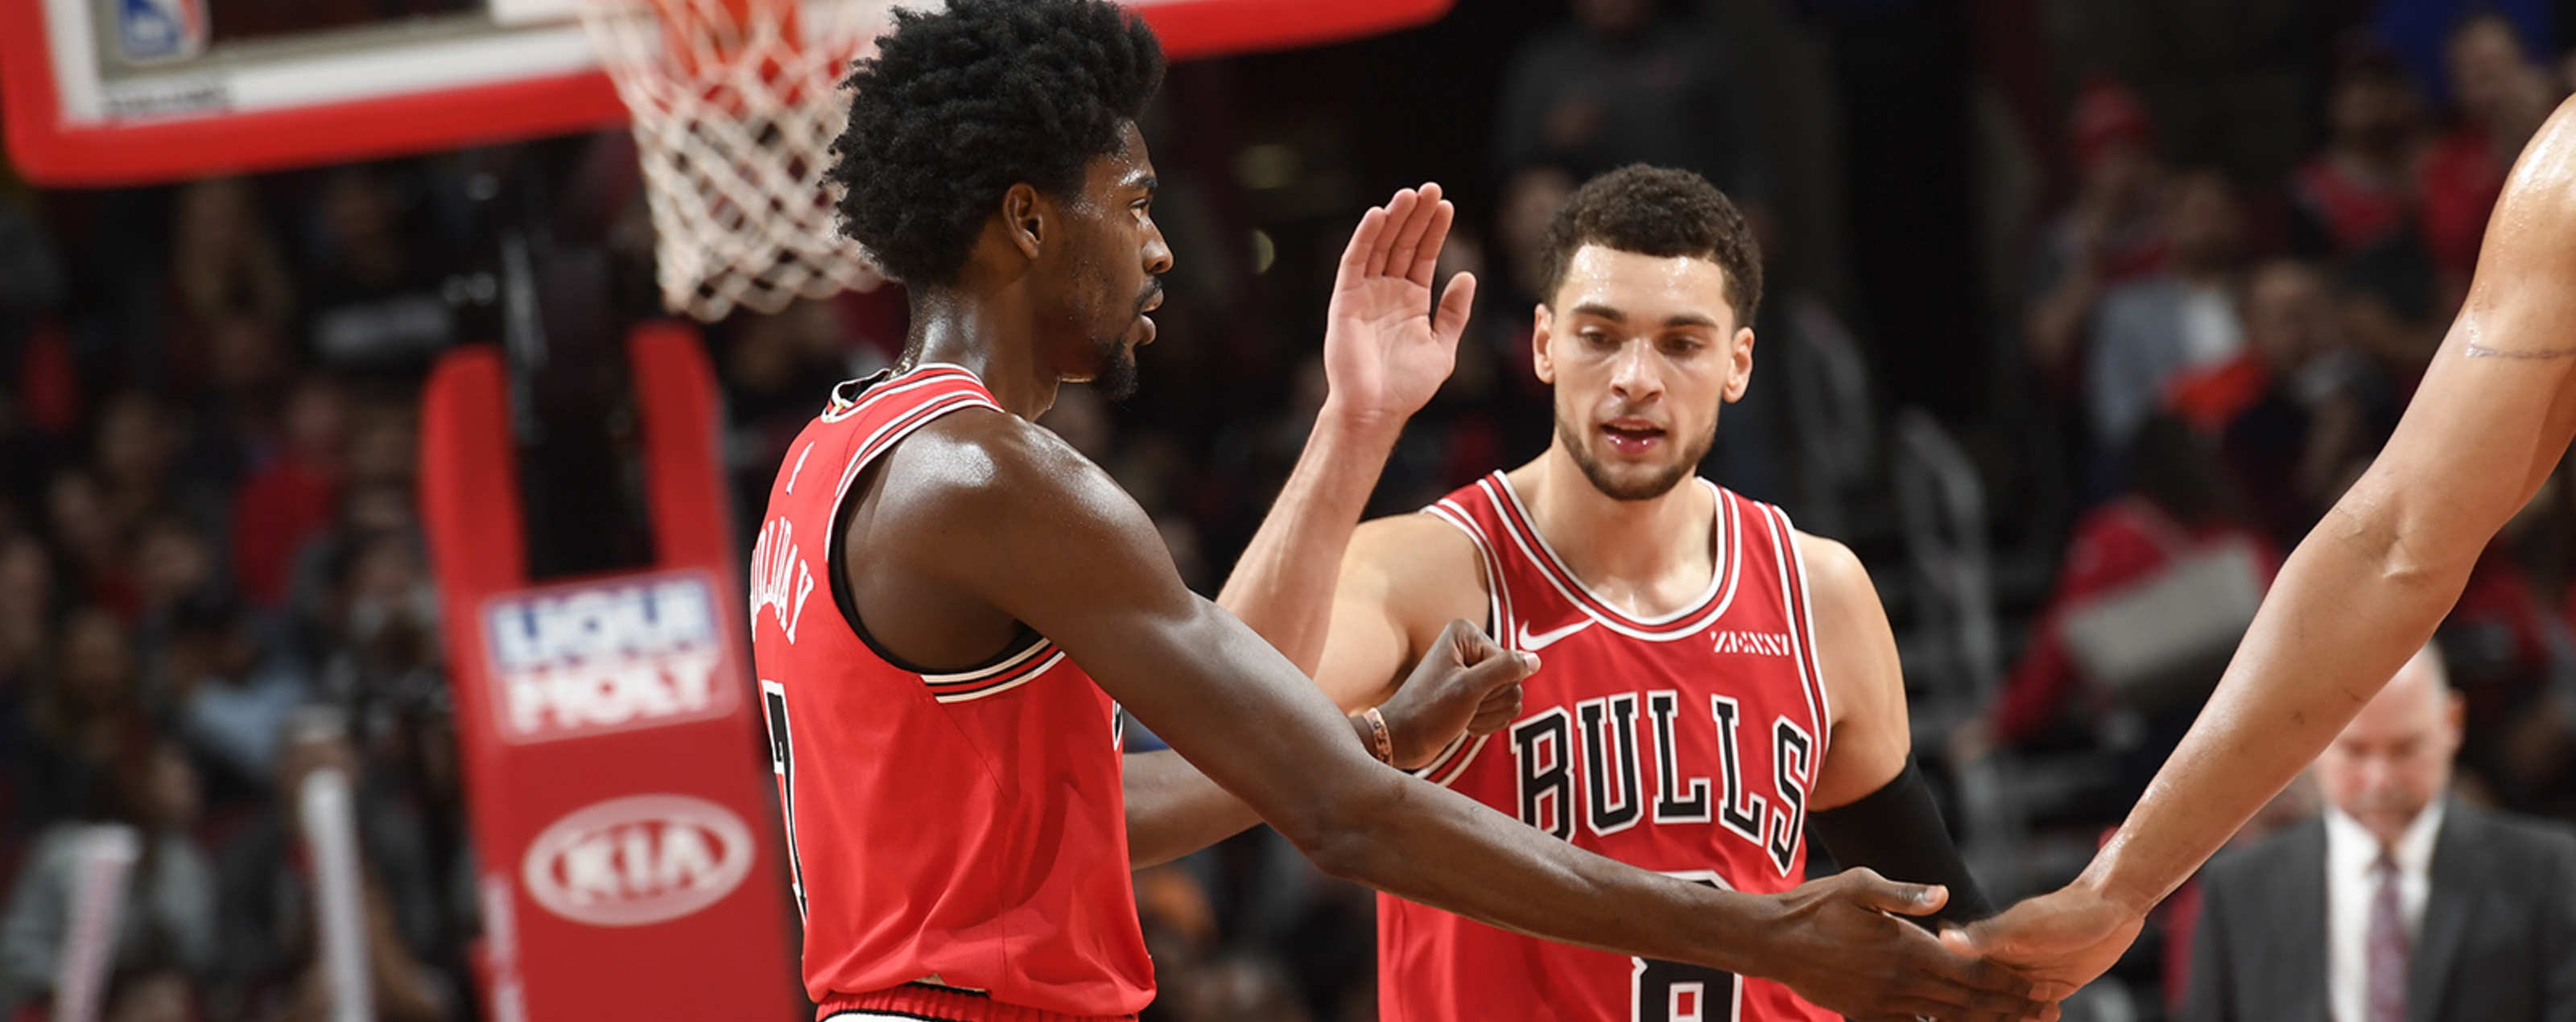 chuck's daily check in - 11.10.18 | chicago bulls